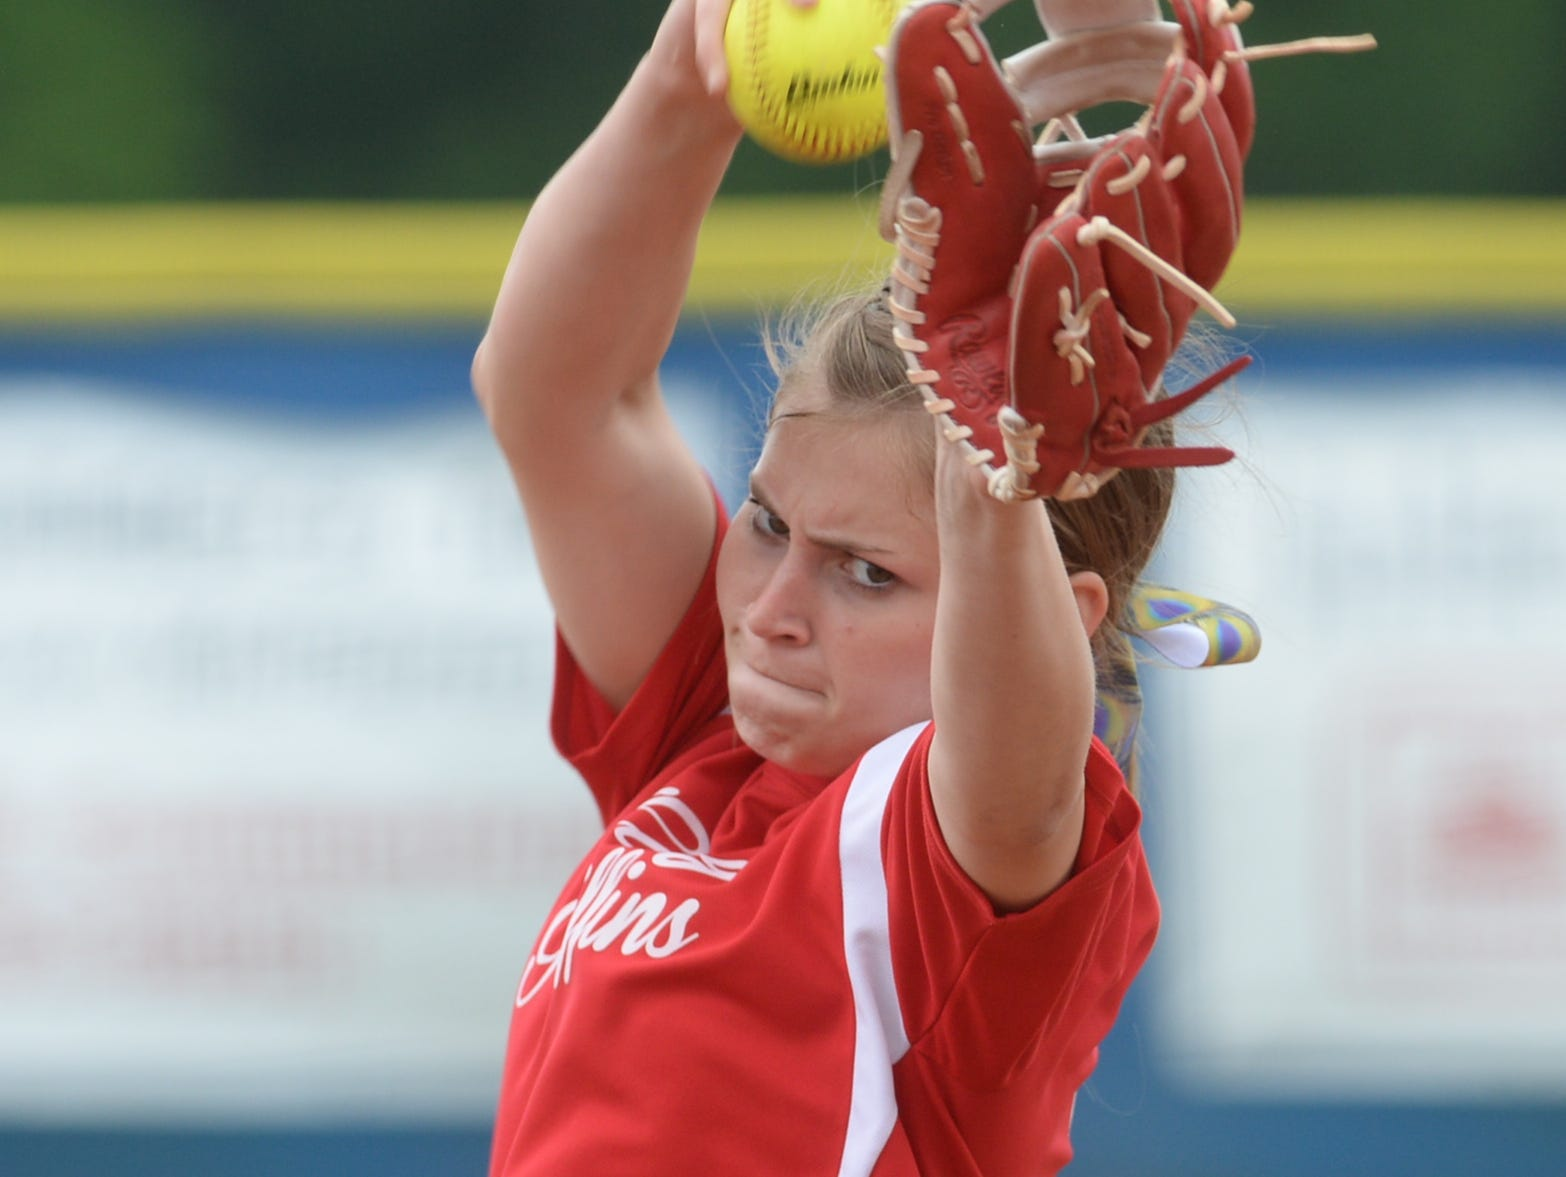 Emma Callie Delafield threw 11 strikeouts in the Griffins 10-0 win over Rayne.